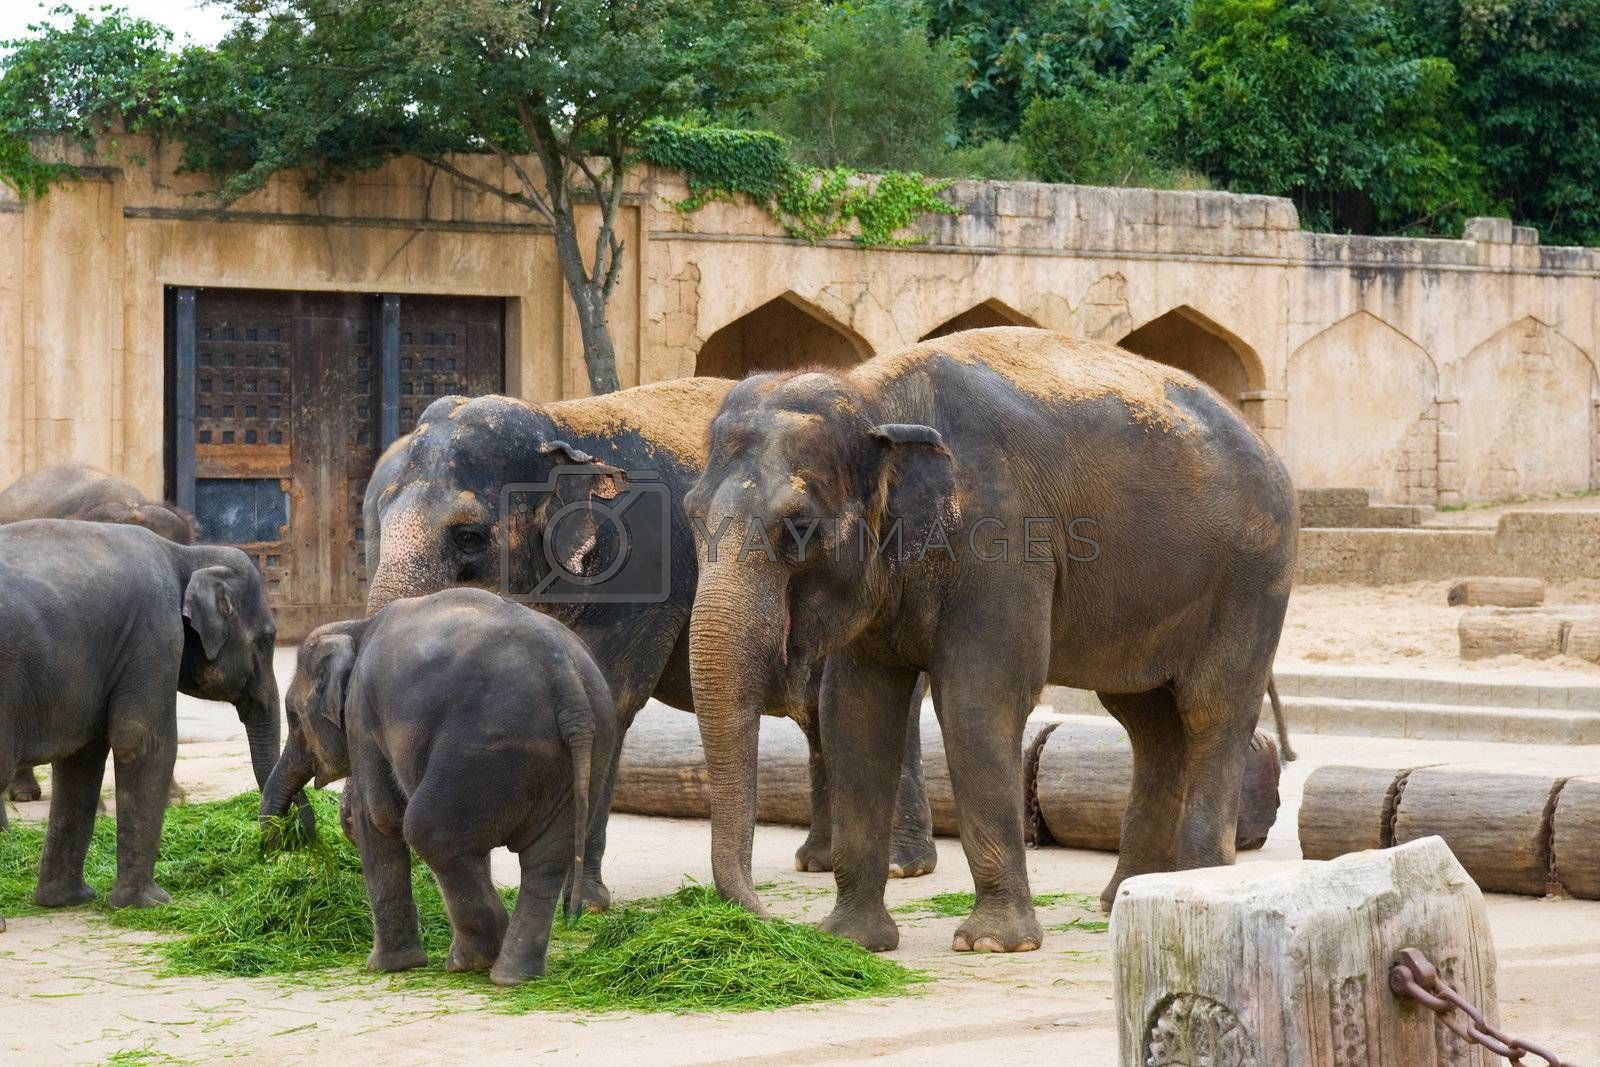 Elephants eat grass on a foreground of ancient wall